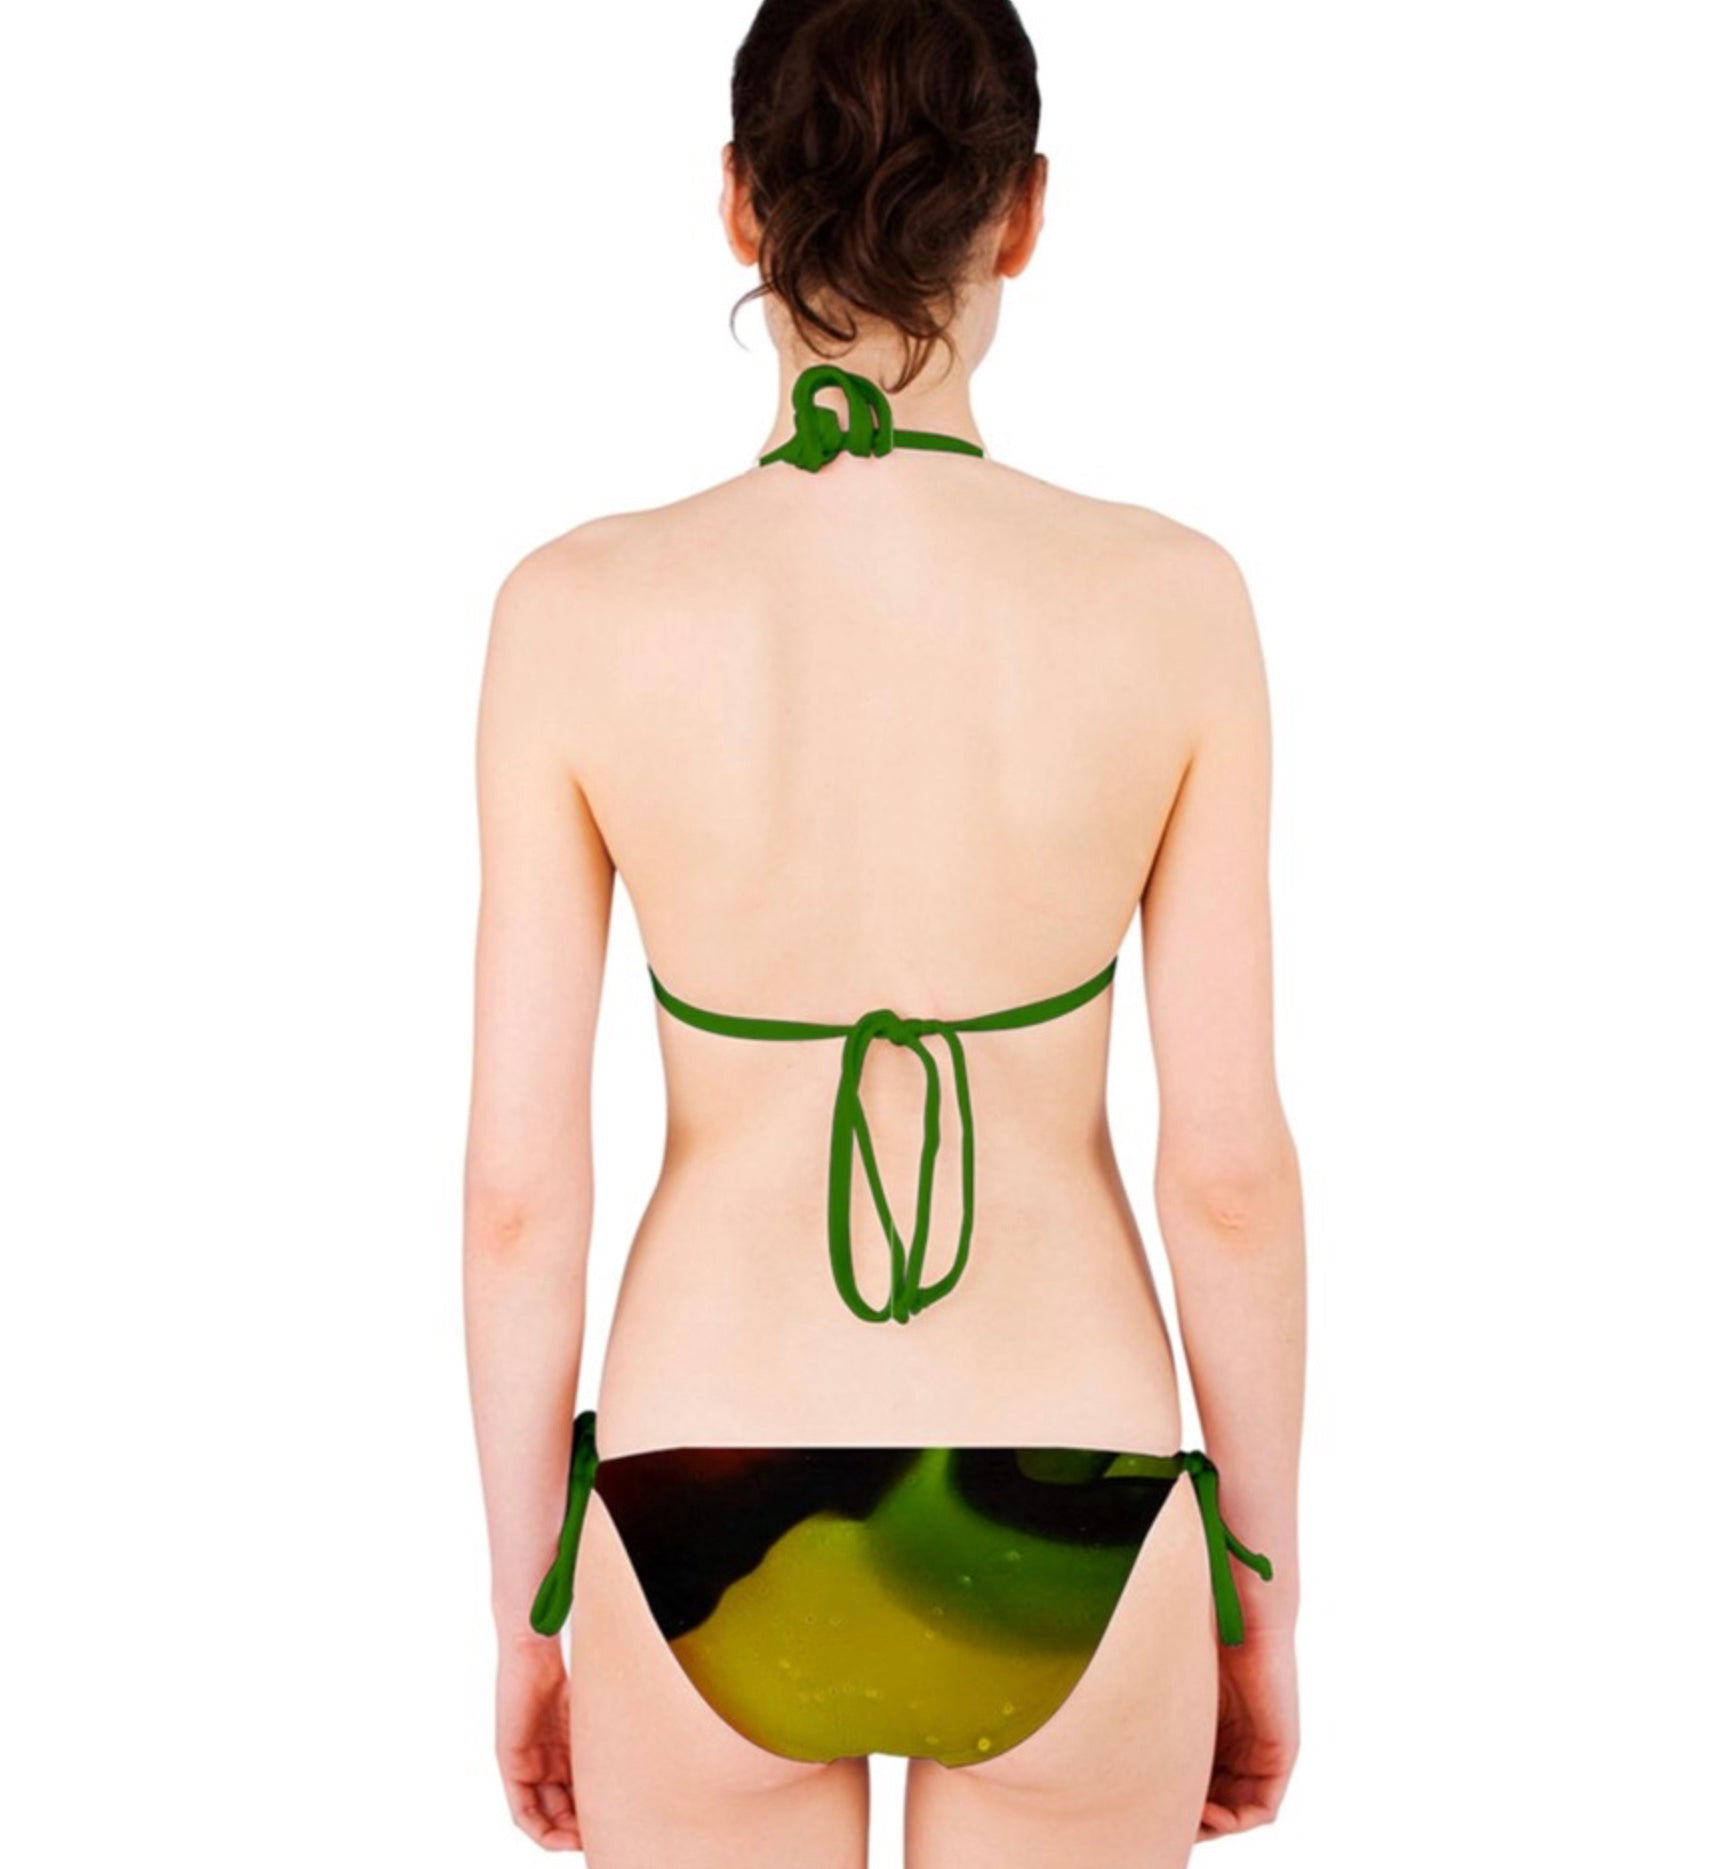 The Green Team Bikini